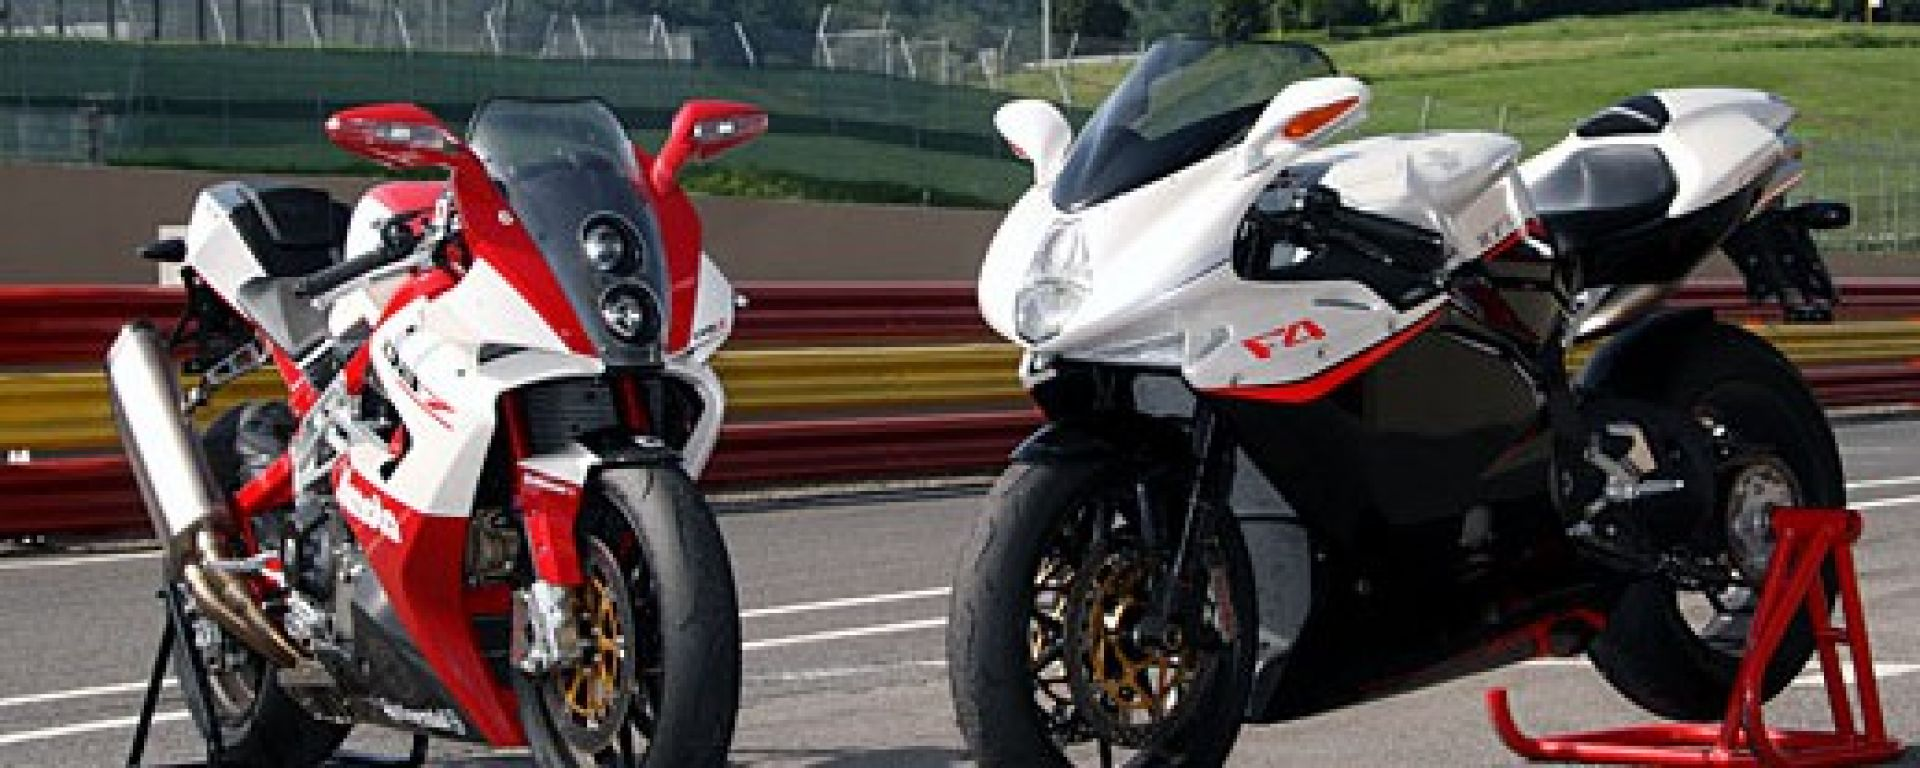 Bimota DB7 VS MV F4 1078